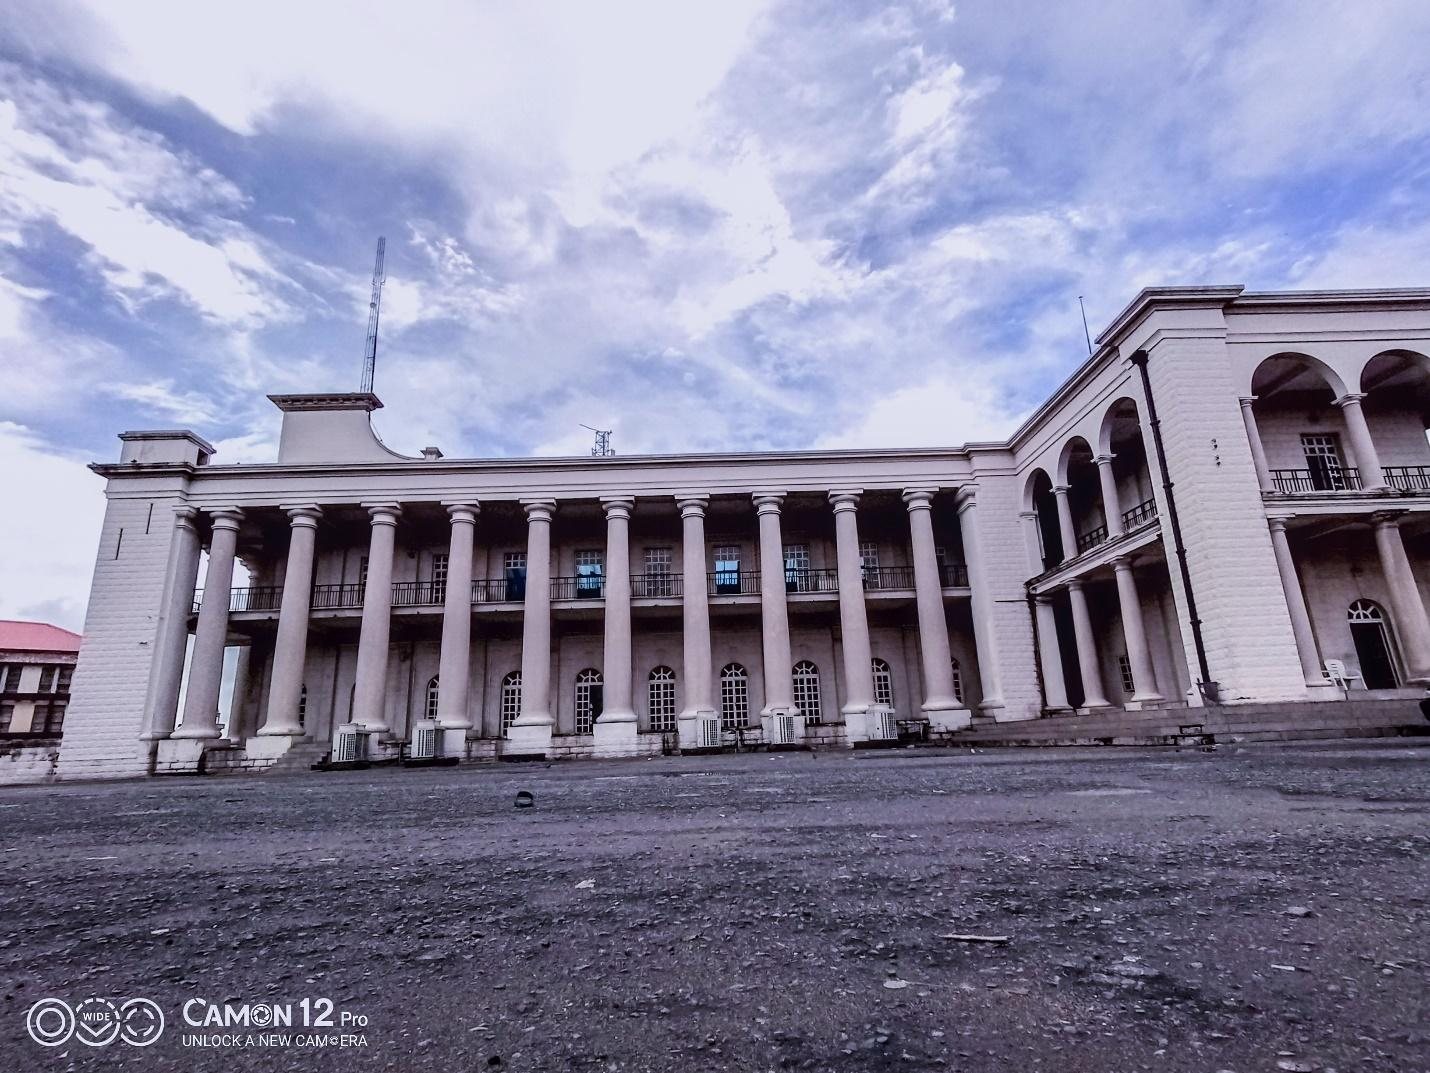 C:\Users\user\Desktop\Camping pictures on Camon 12\wide angle picture of Mapo Hall.jpg